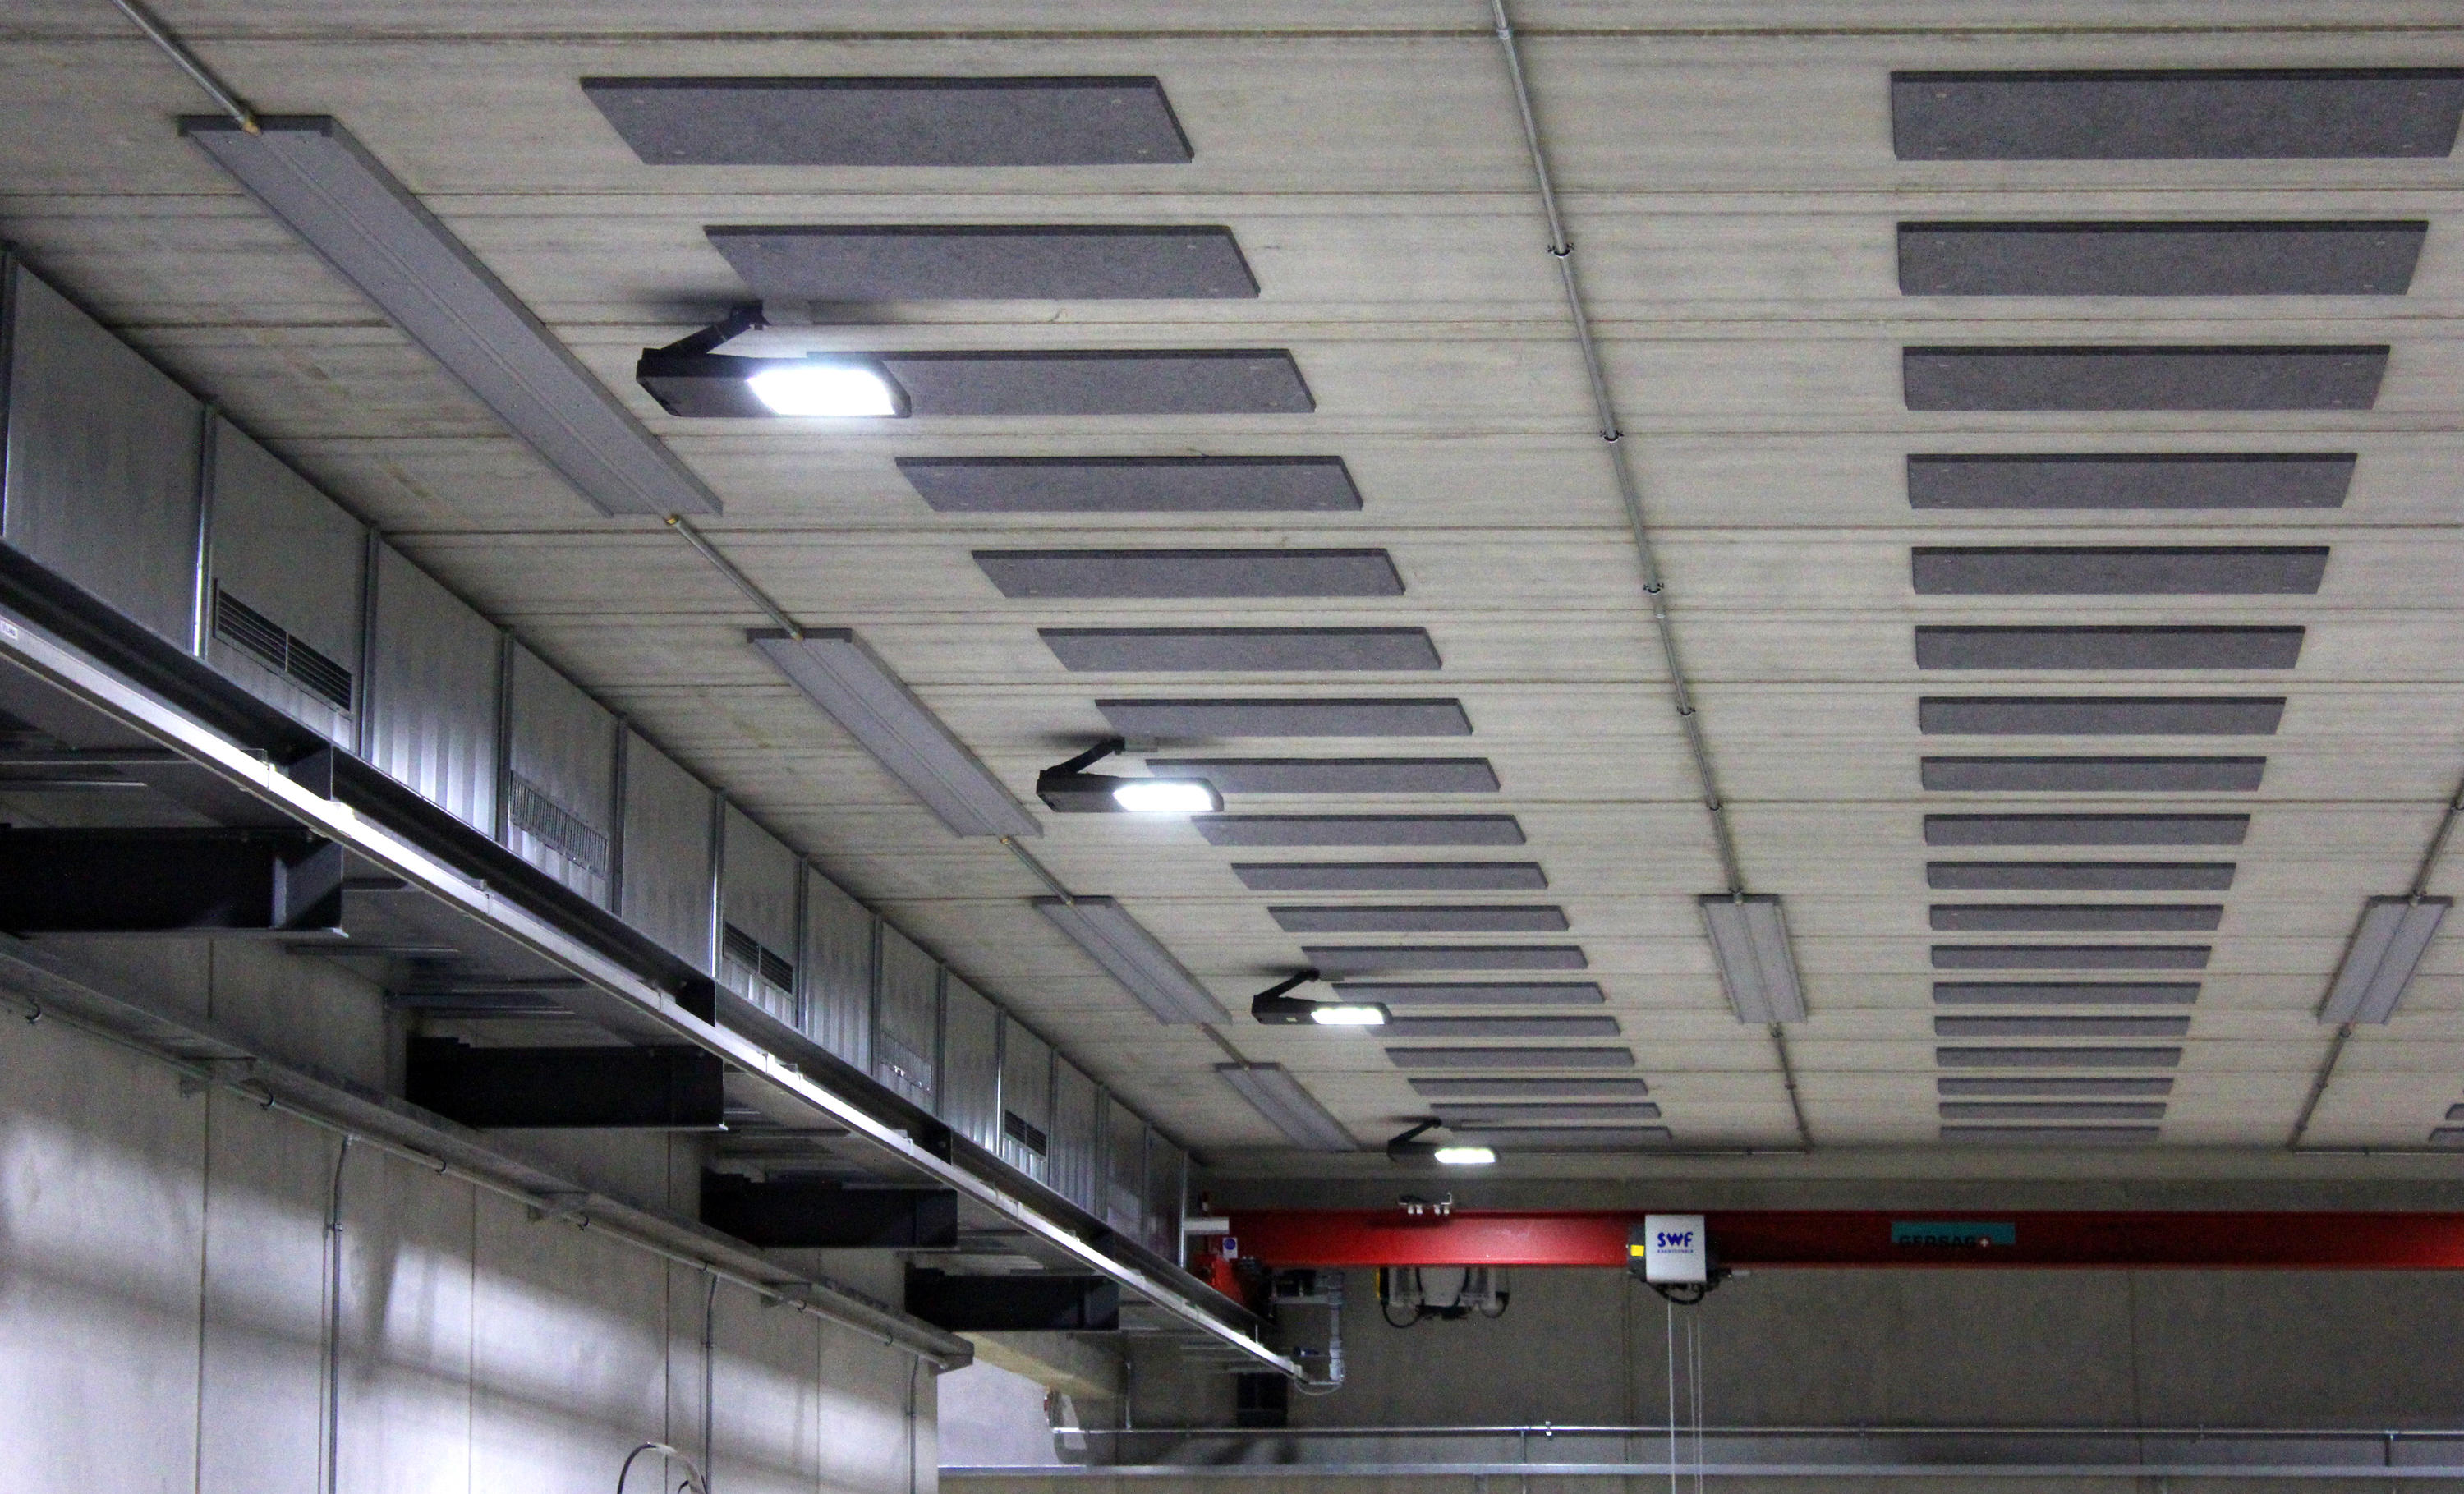 Outdoor Küche Metro : Metro aula led hallenbeleuchtung outdoor ceiling lights von